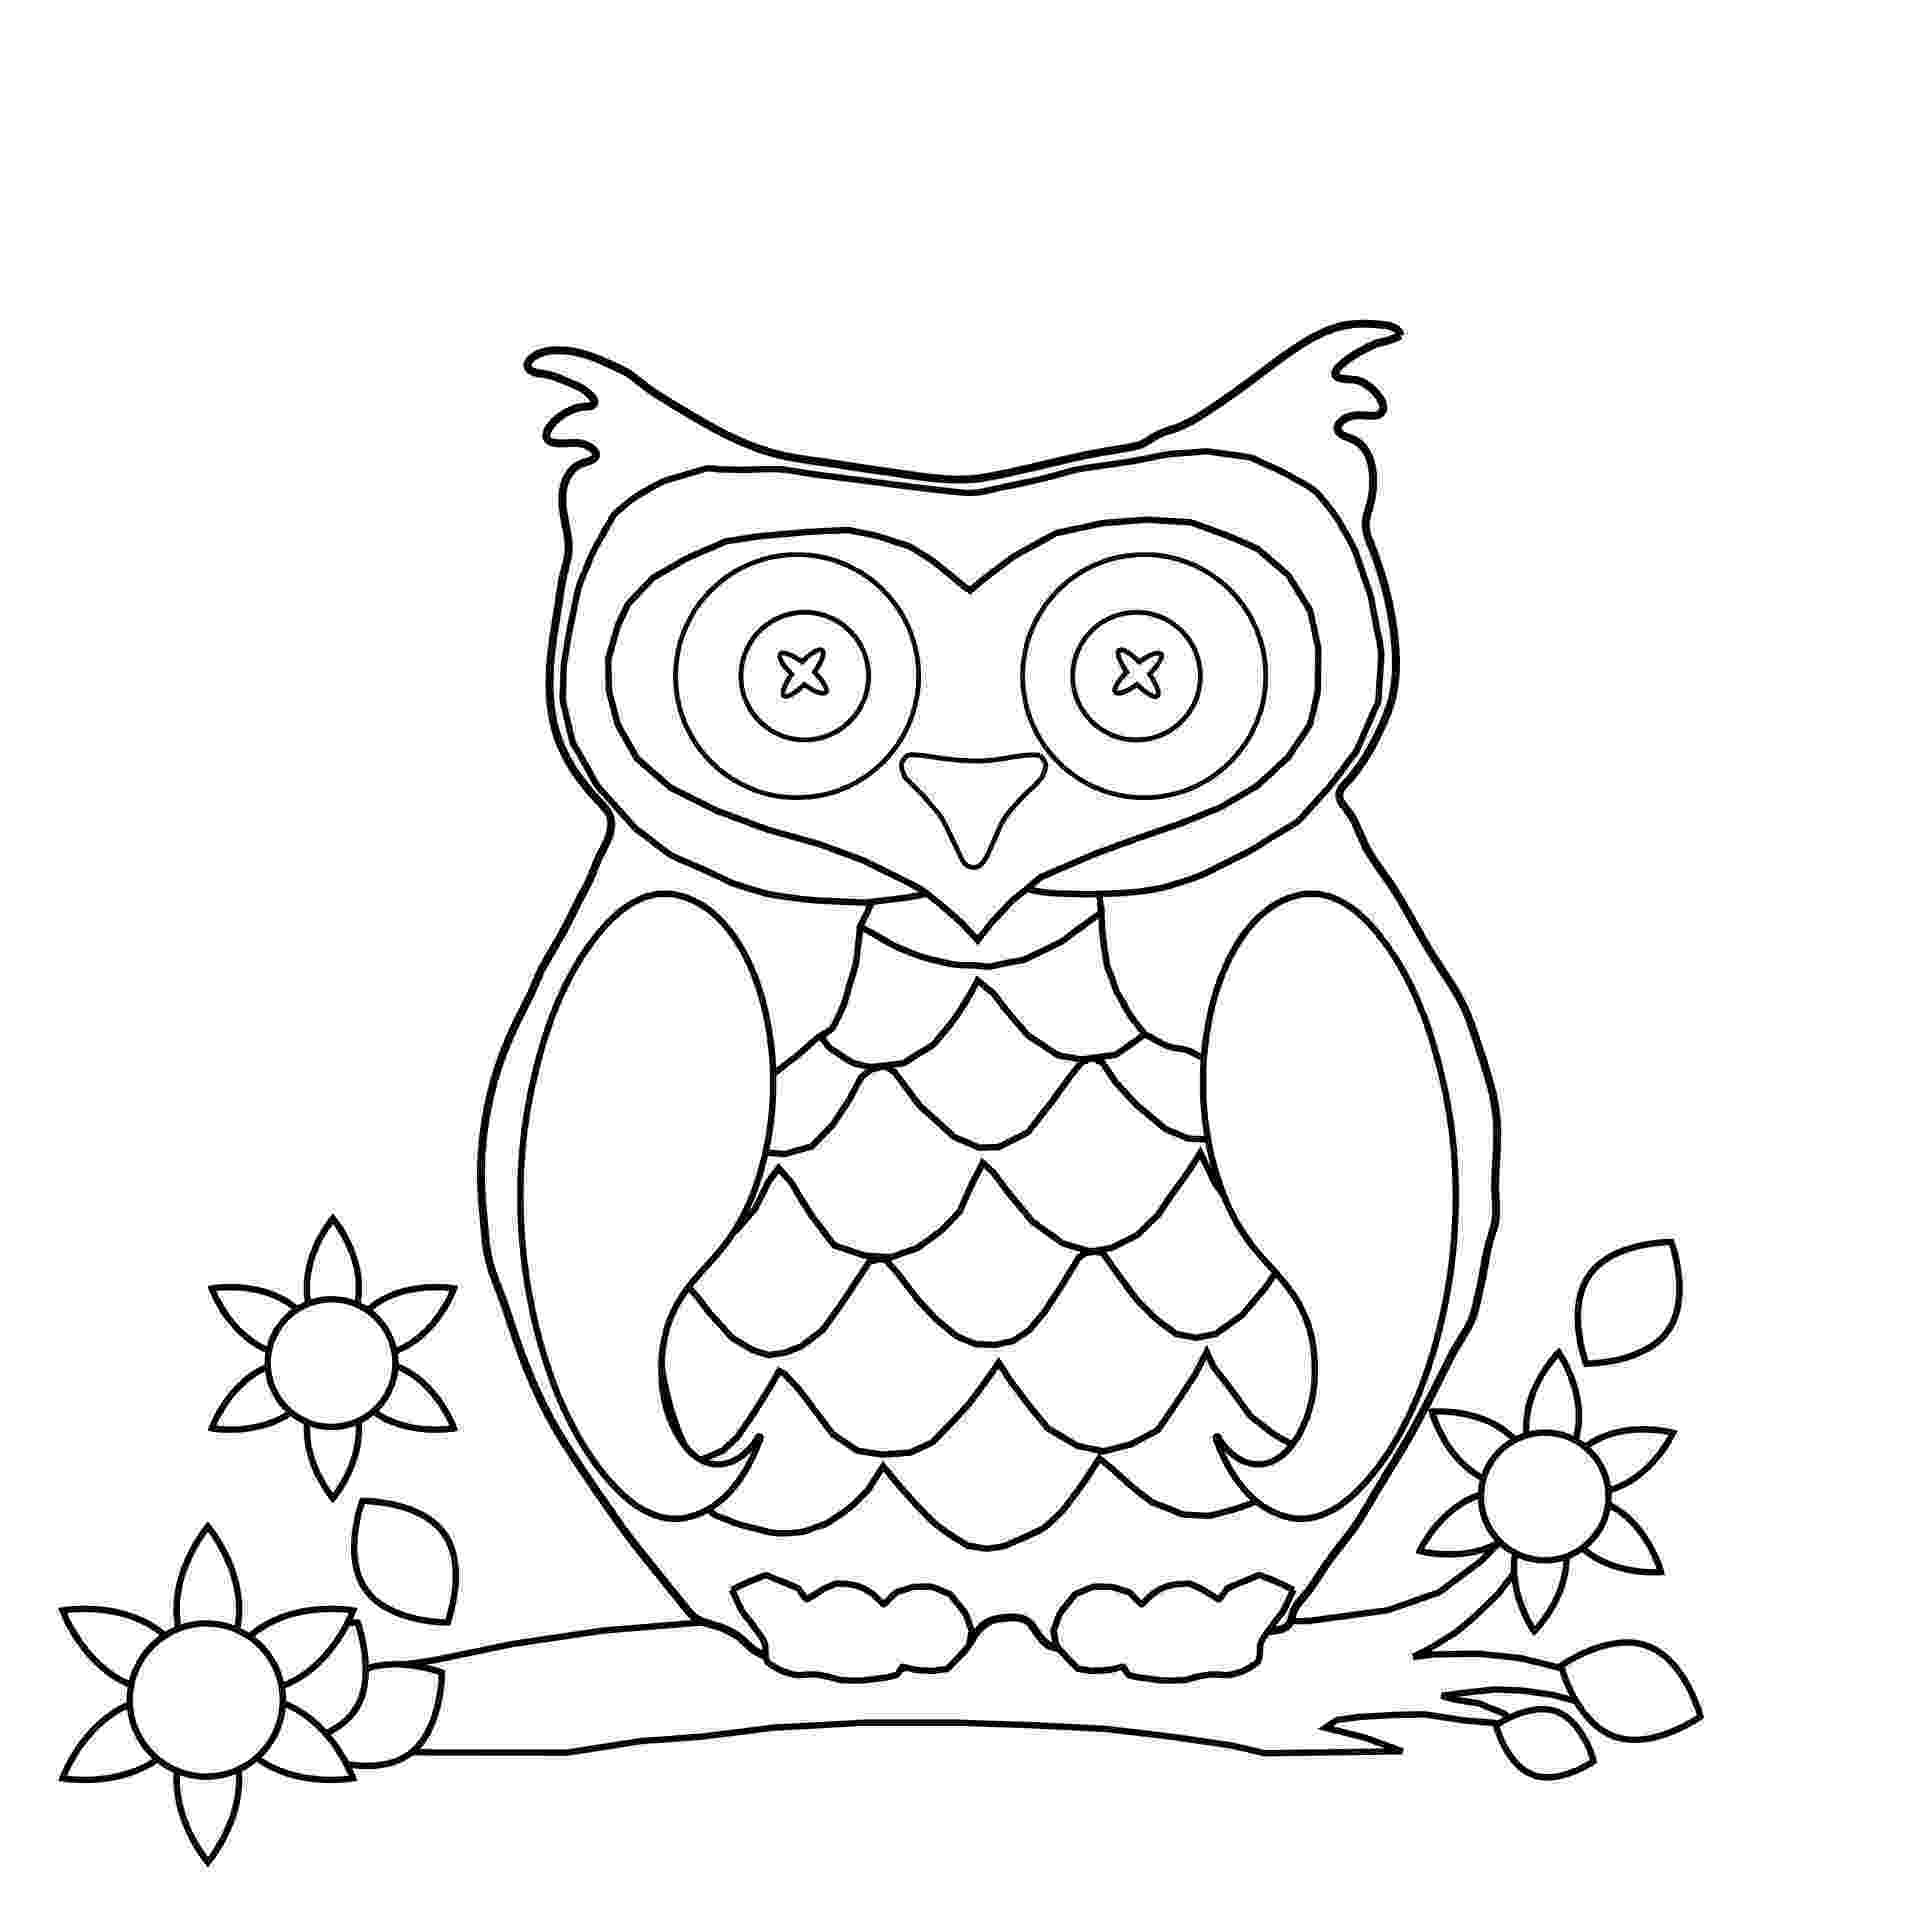 pictures of owls to color owl coloring pages all about owl color to owls pictures of